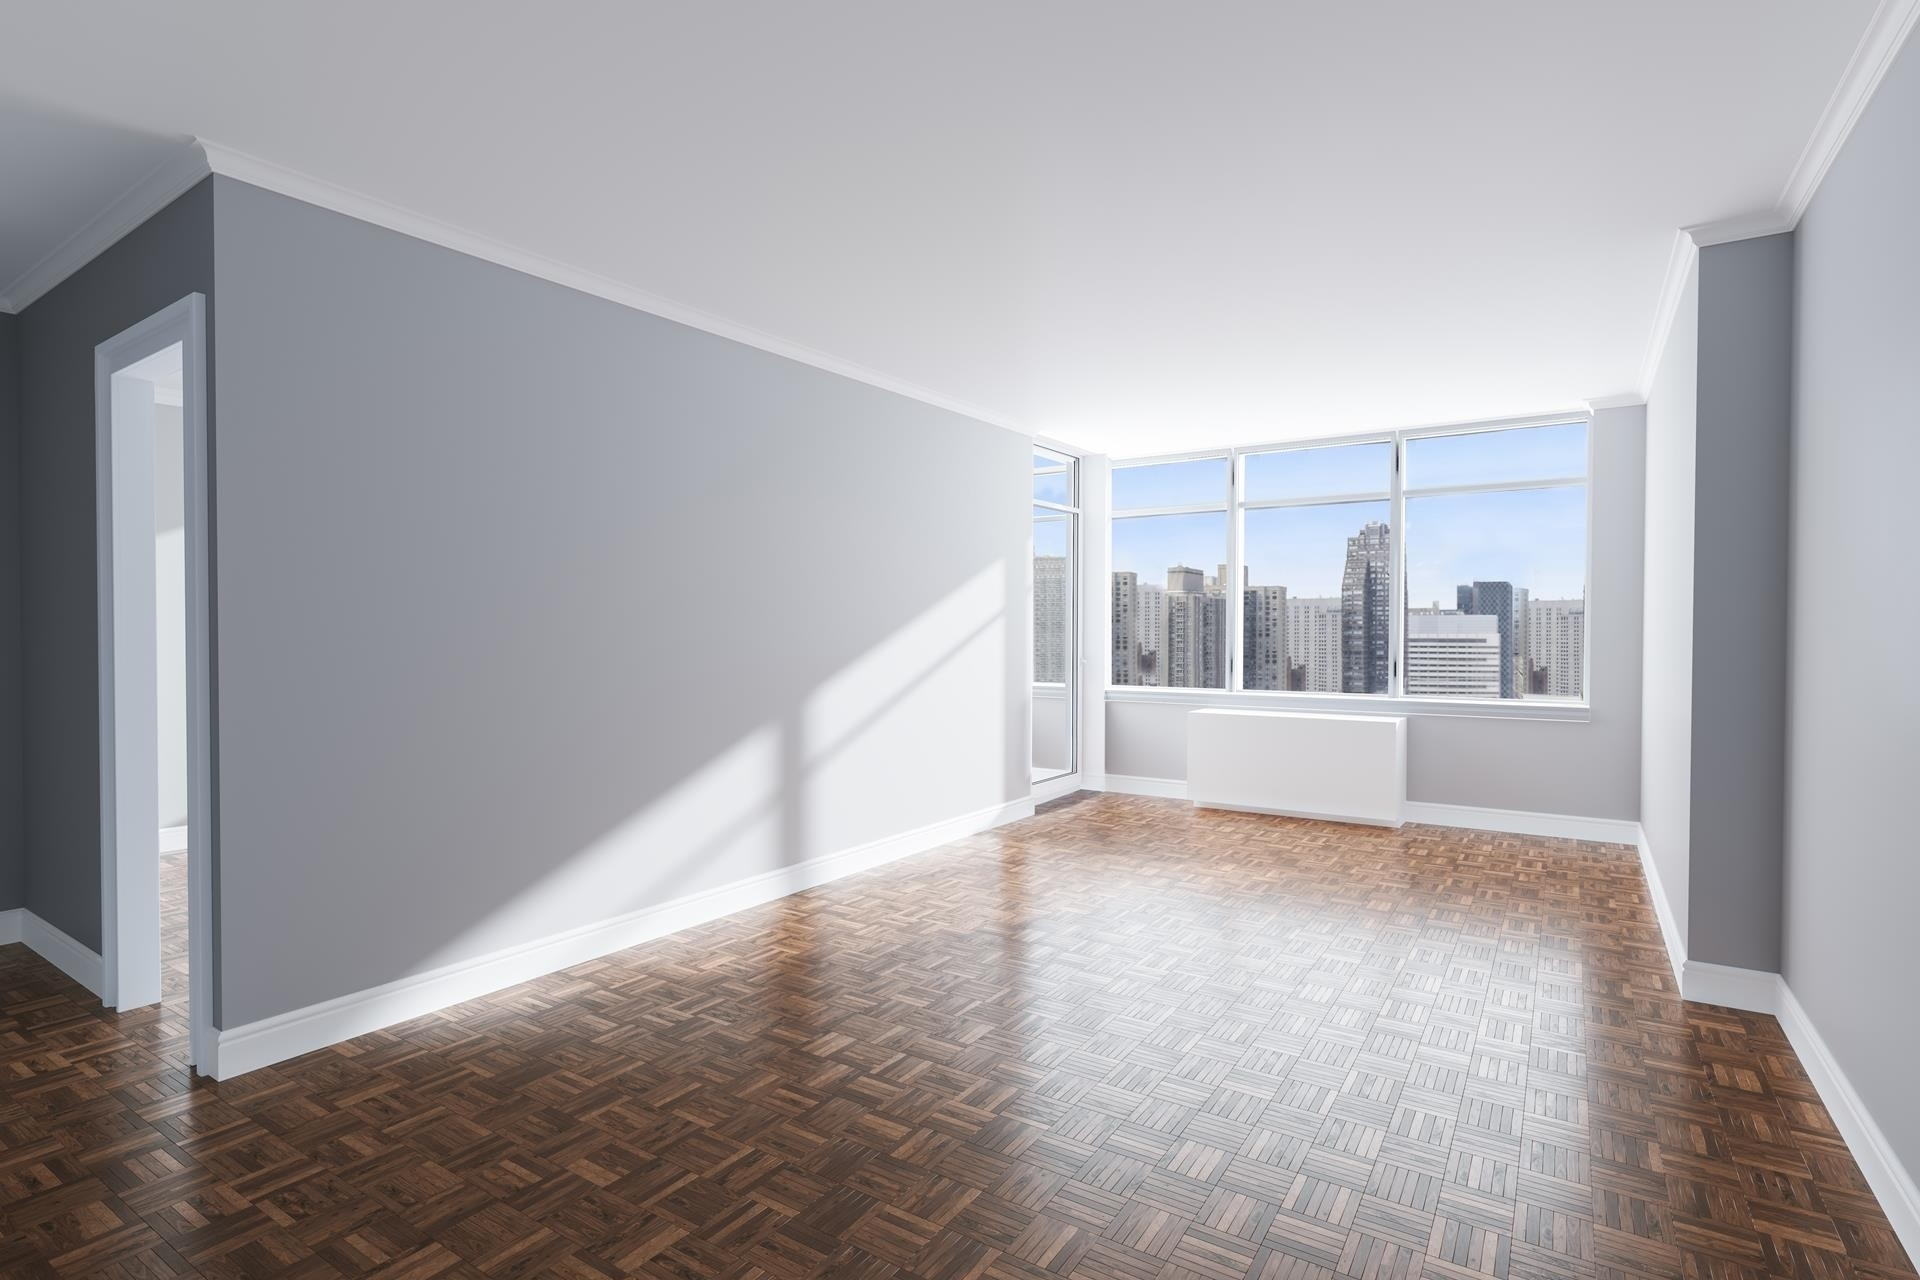 Condominium at 404 East 79th St, 28A New York